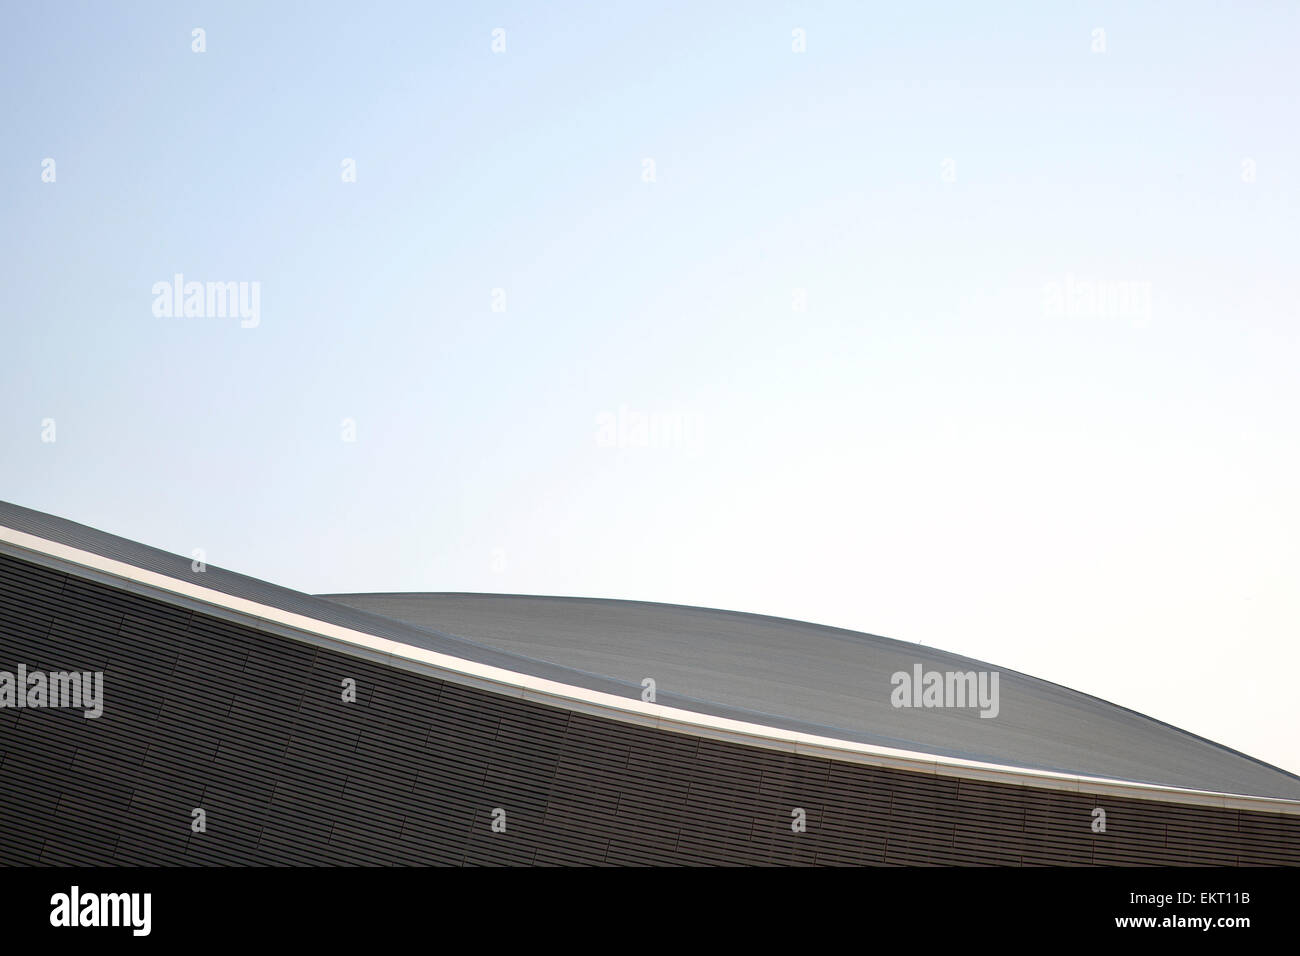 Exterior detail showing the precise wood panel facade against clear sky. London 2012 Aquatics Centre, Stratford, - Stock Image